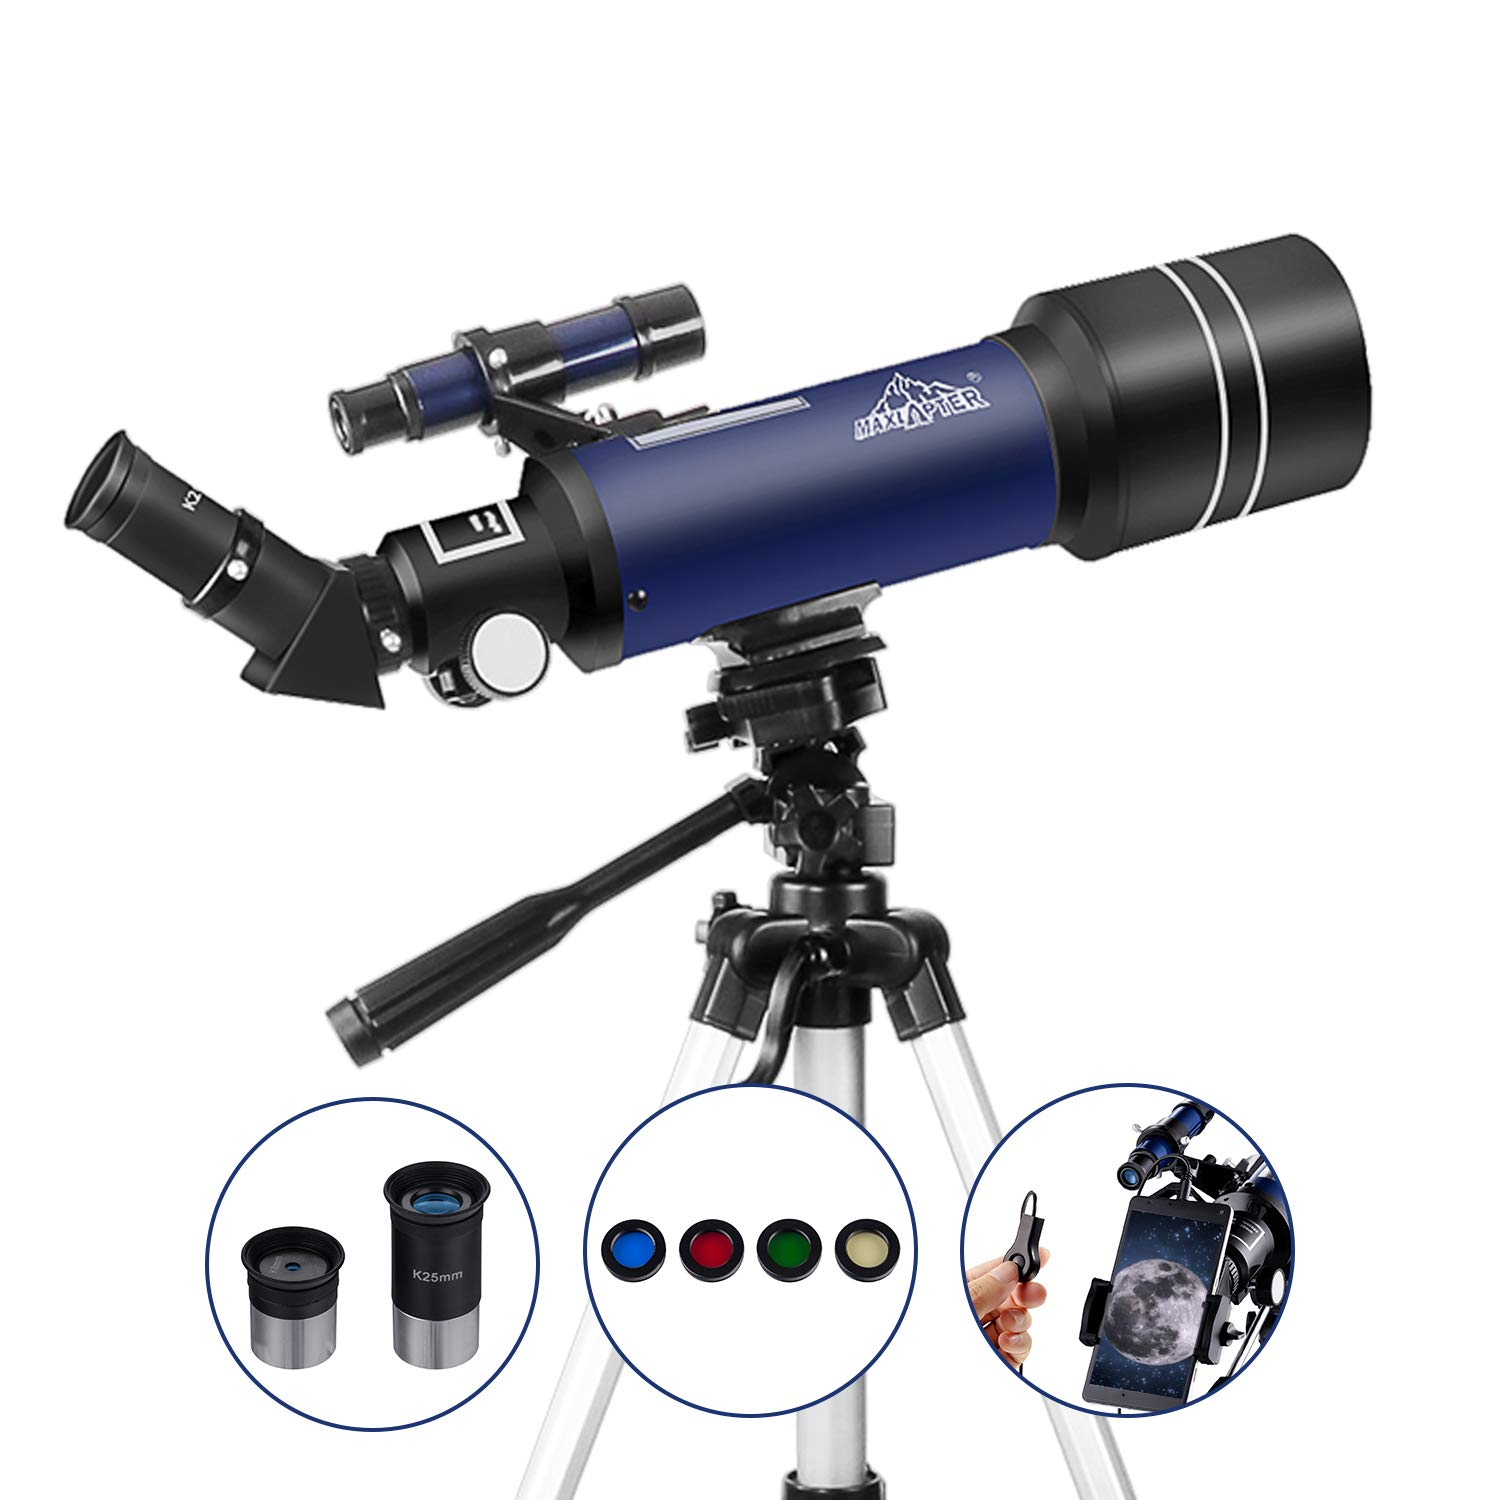 Astronomy Telescope for Beginners with 43 inch Tripod Smartphone Adapter Mounting Portable Travel Scope Case, 400 70mm 66x MAXLAPTER by MAXLAPTER